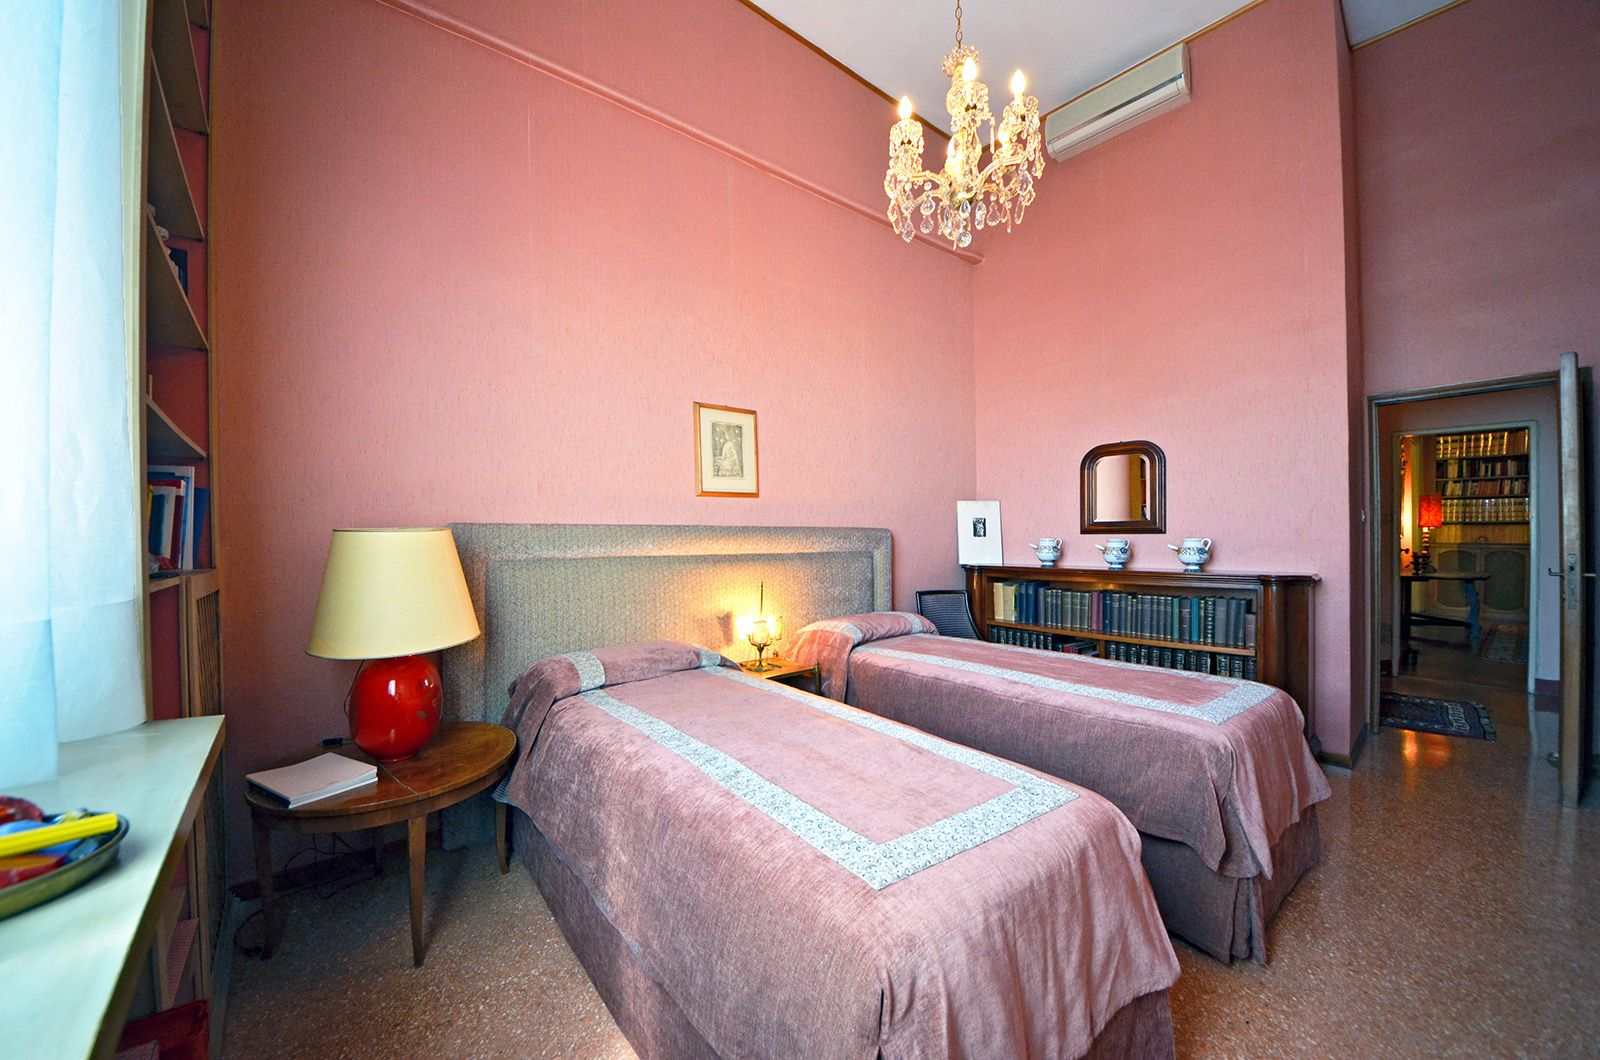 third spacious bedroom that can be used as double or twin on request